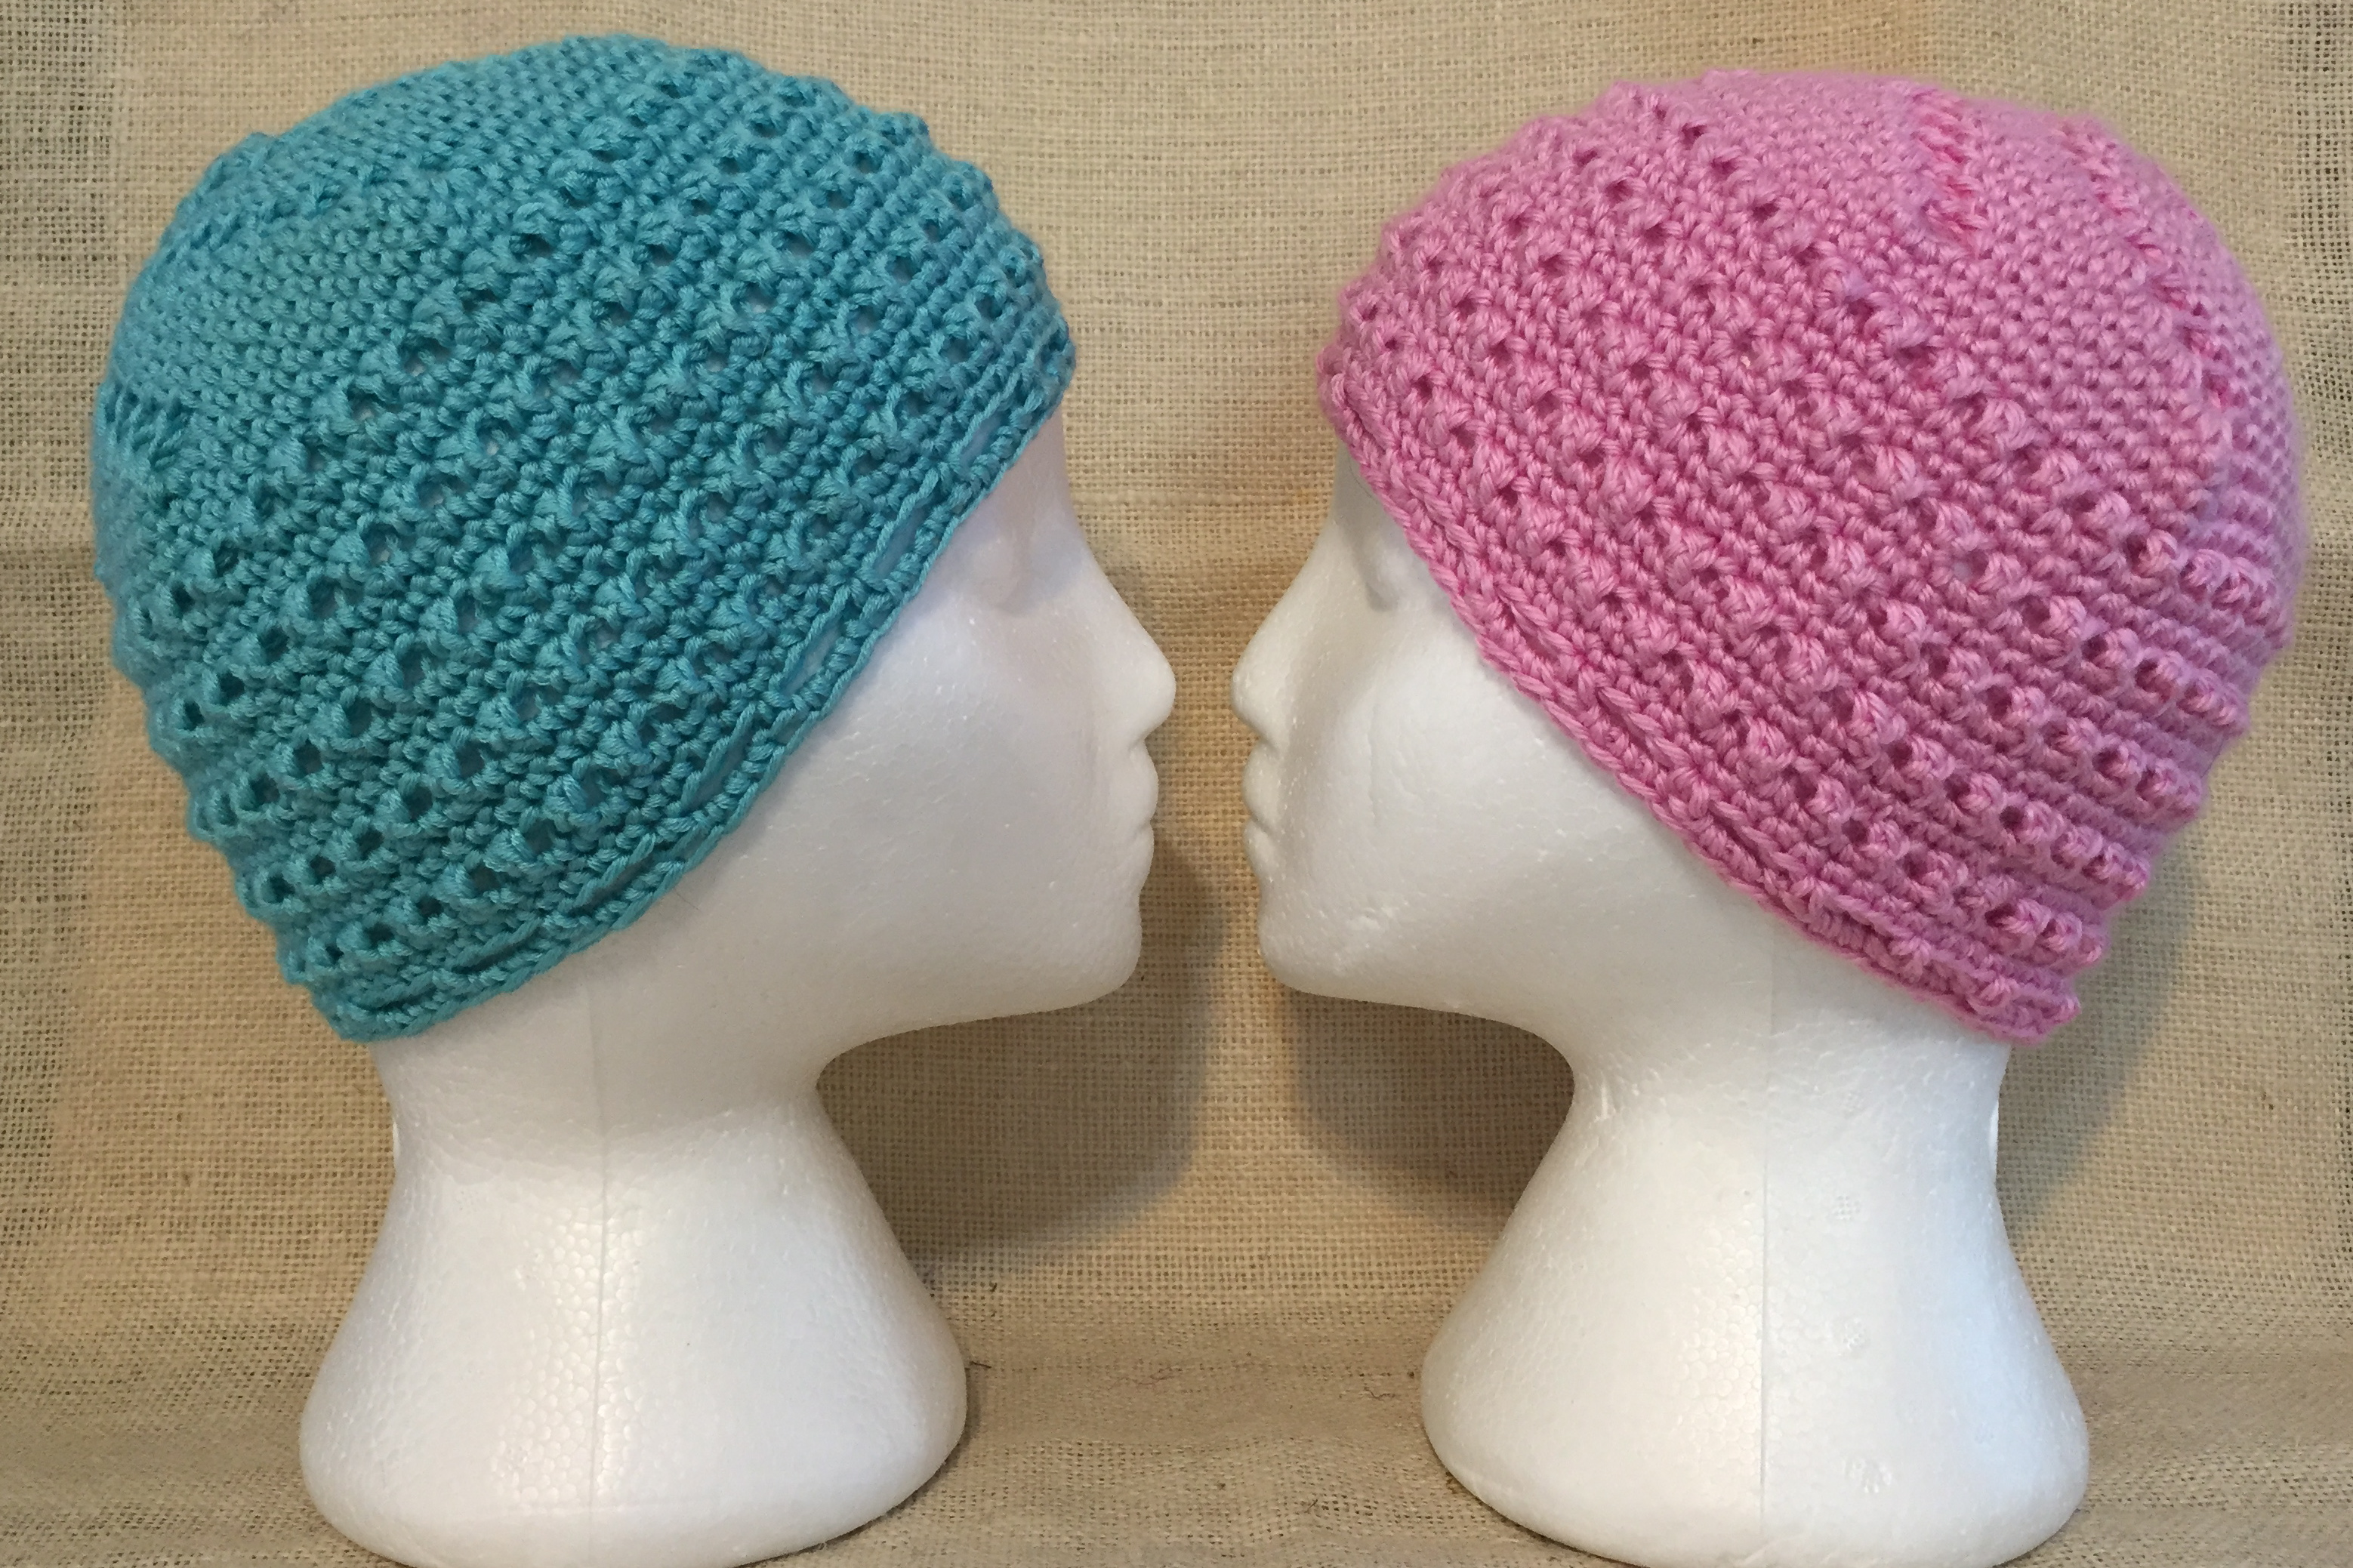 Crochet Hat Patterns Free Cancer Patients : chemo caps bonnyknits